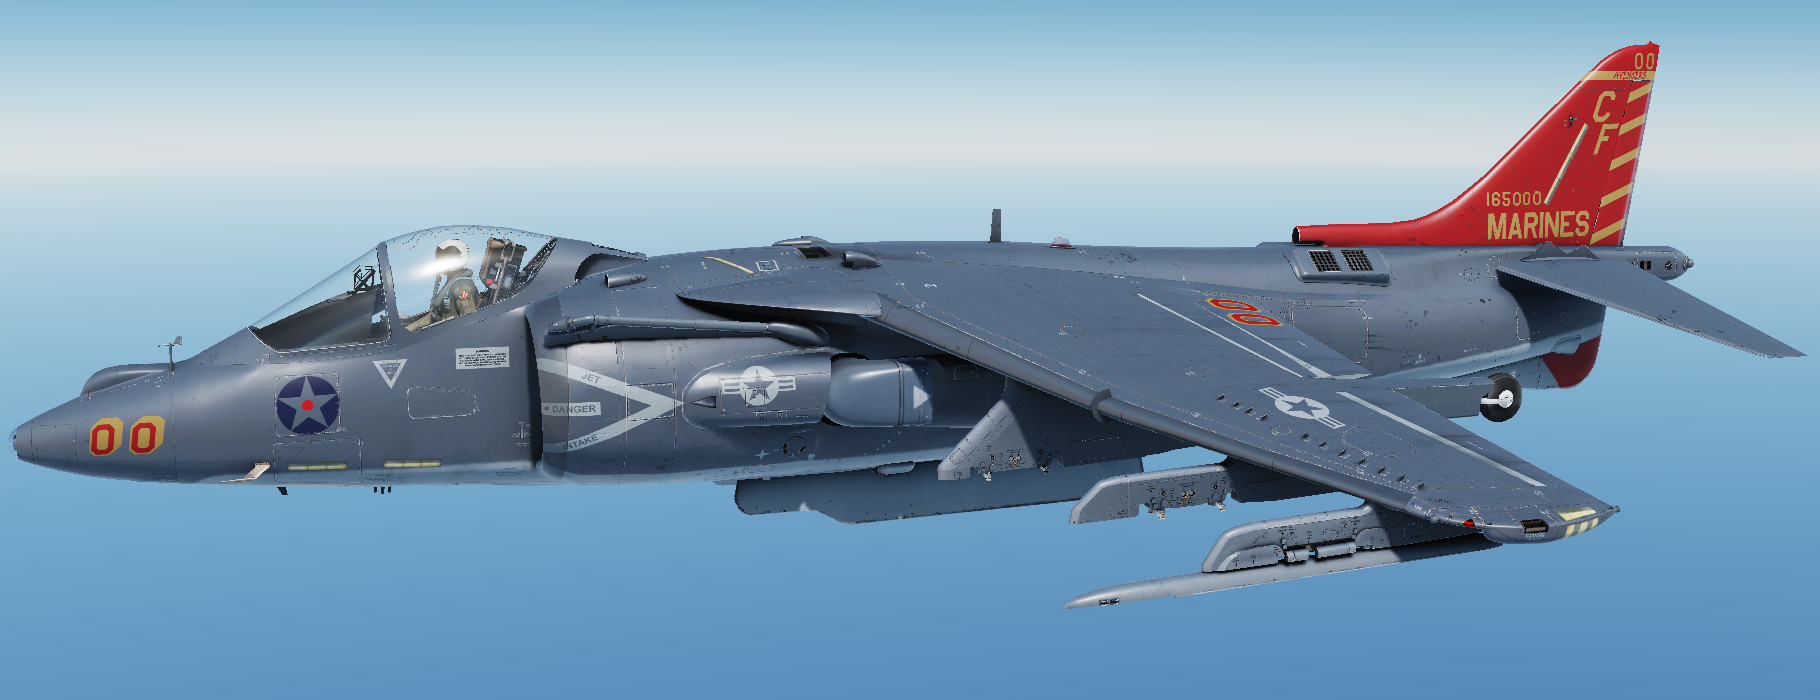 VMA-211 Red Tail (2.0)